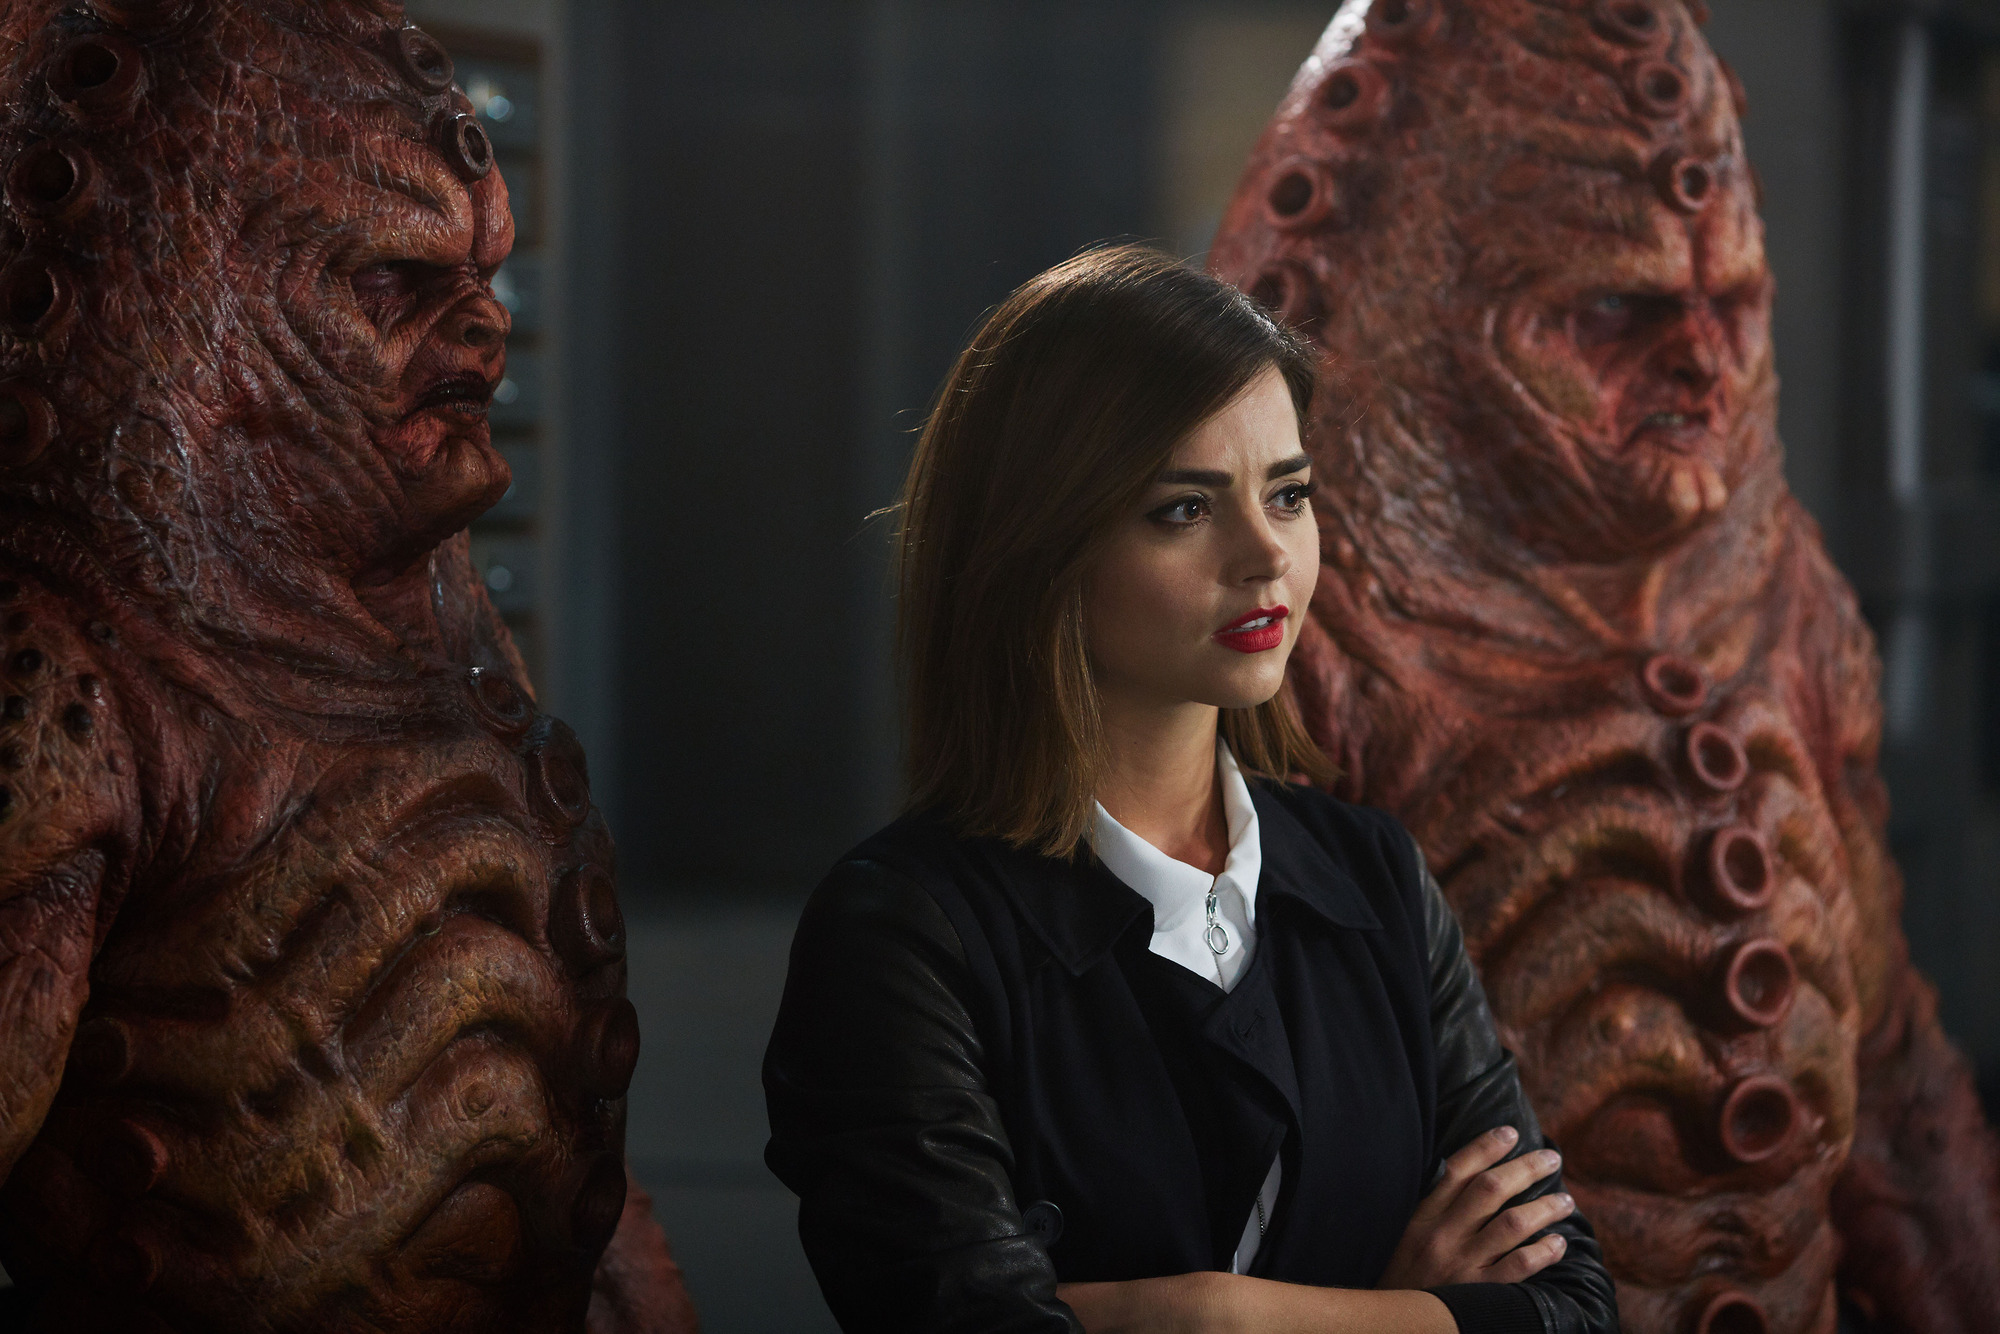 Doctor Who, INVERSION OF THE ZYGONS By Peter Harness and Steven Moffat starring Jenna Coleman